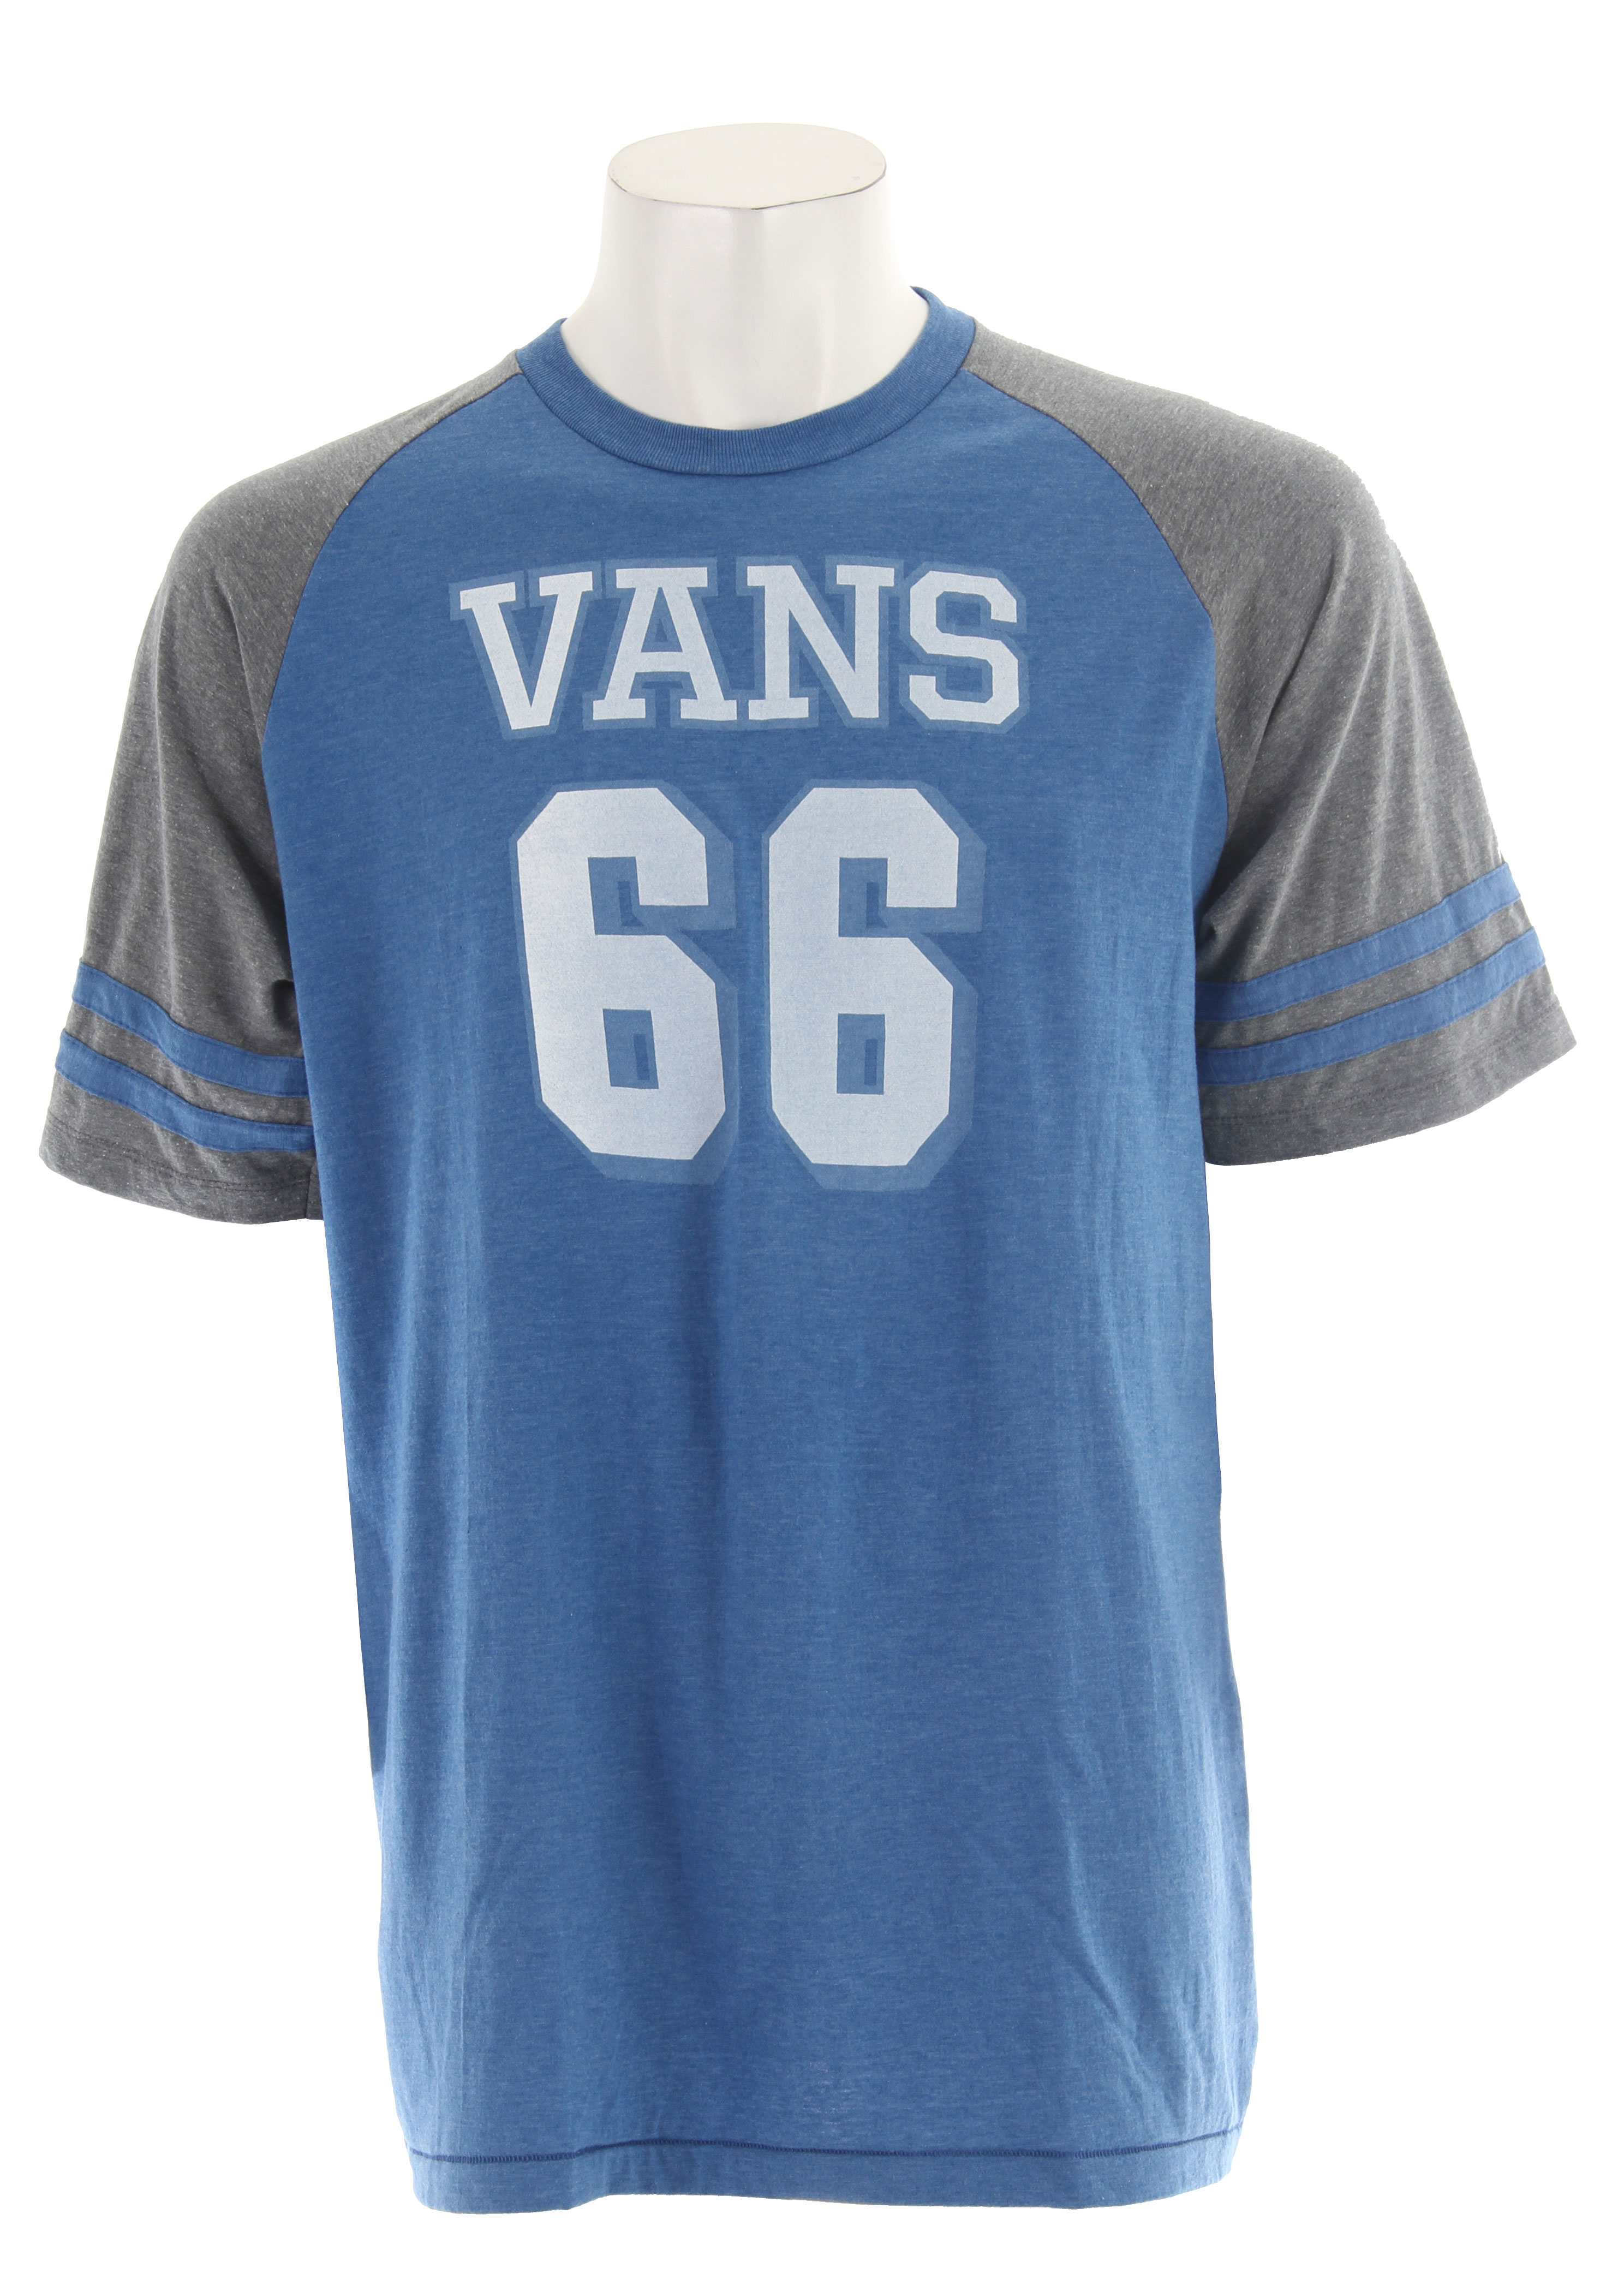 "Skateboard Whether you're skating with your friends, or just need another shirt to add to your collection, you need the Vans Team Vans T-Shirt. The shirt features 50% Cotton, 50% Polyester, 30/1 Custom Fit 4.5 oz. combed ringspun cotton raglan, for the ultimate blend in comfort and durability. Look your best at the skate park this weekend in the Team Vans T-Shirt.Key Features of The Vans Team Vans T-Shirt:  Regular Fit  Crew Neck  Short Sleeve  50% Cotton, 50% Polyester 30/1 Custom Fit 4.5 oz. combed ringspun cotton raglan  ""Vans 66"" screenprinted art on chest with self applique stripes on sleeves  Pick stitch detail on bottom hem  Garment wash for soft handfeel - $9.95"